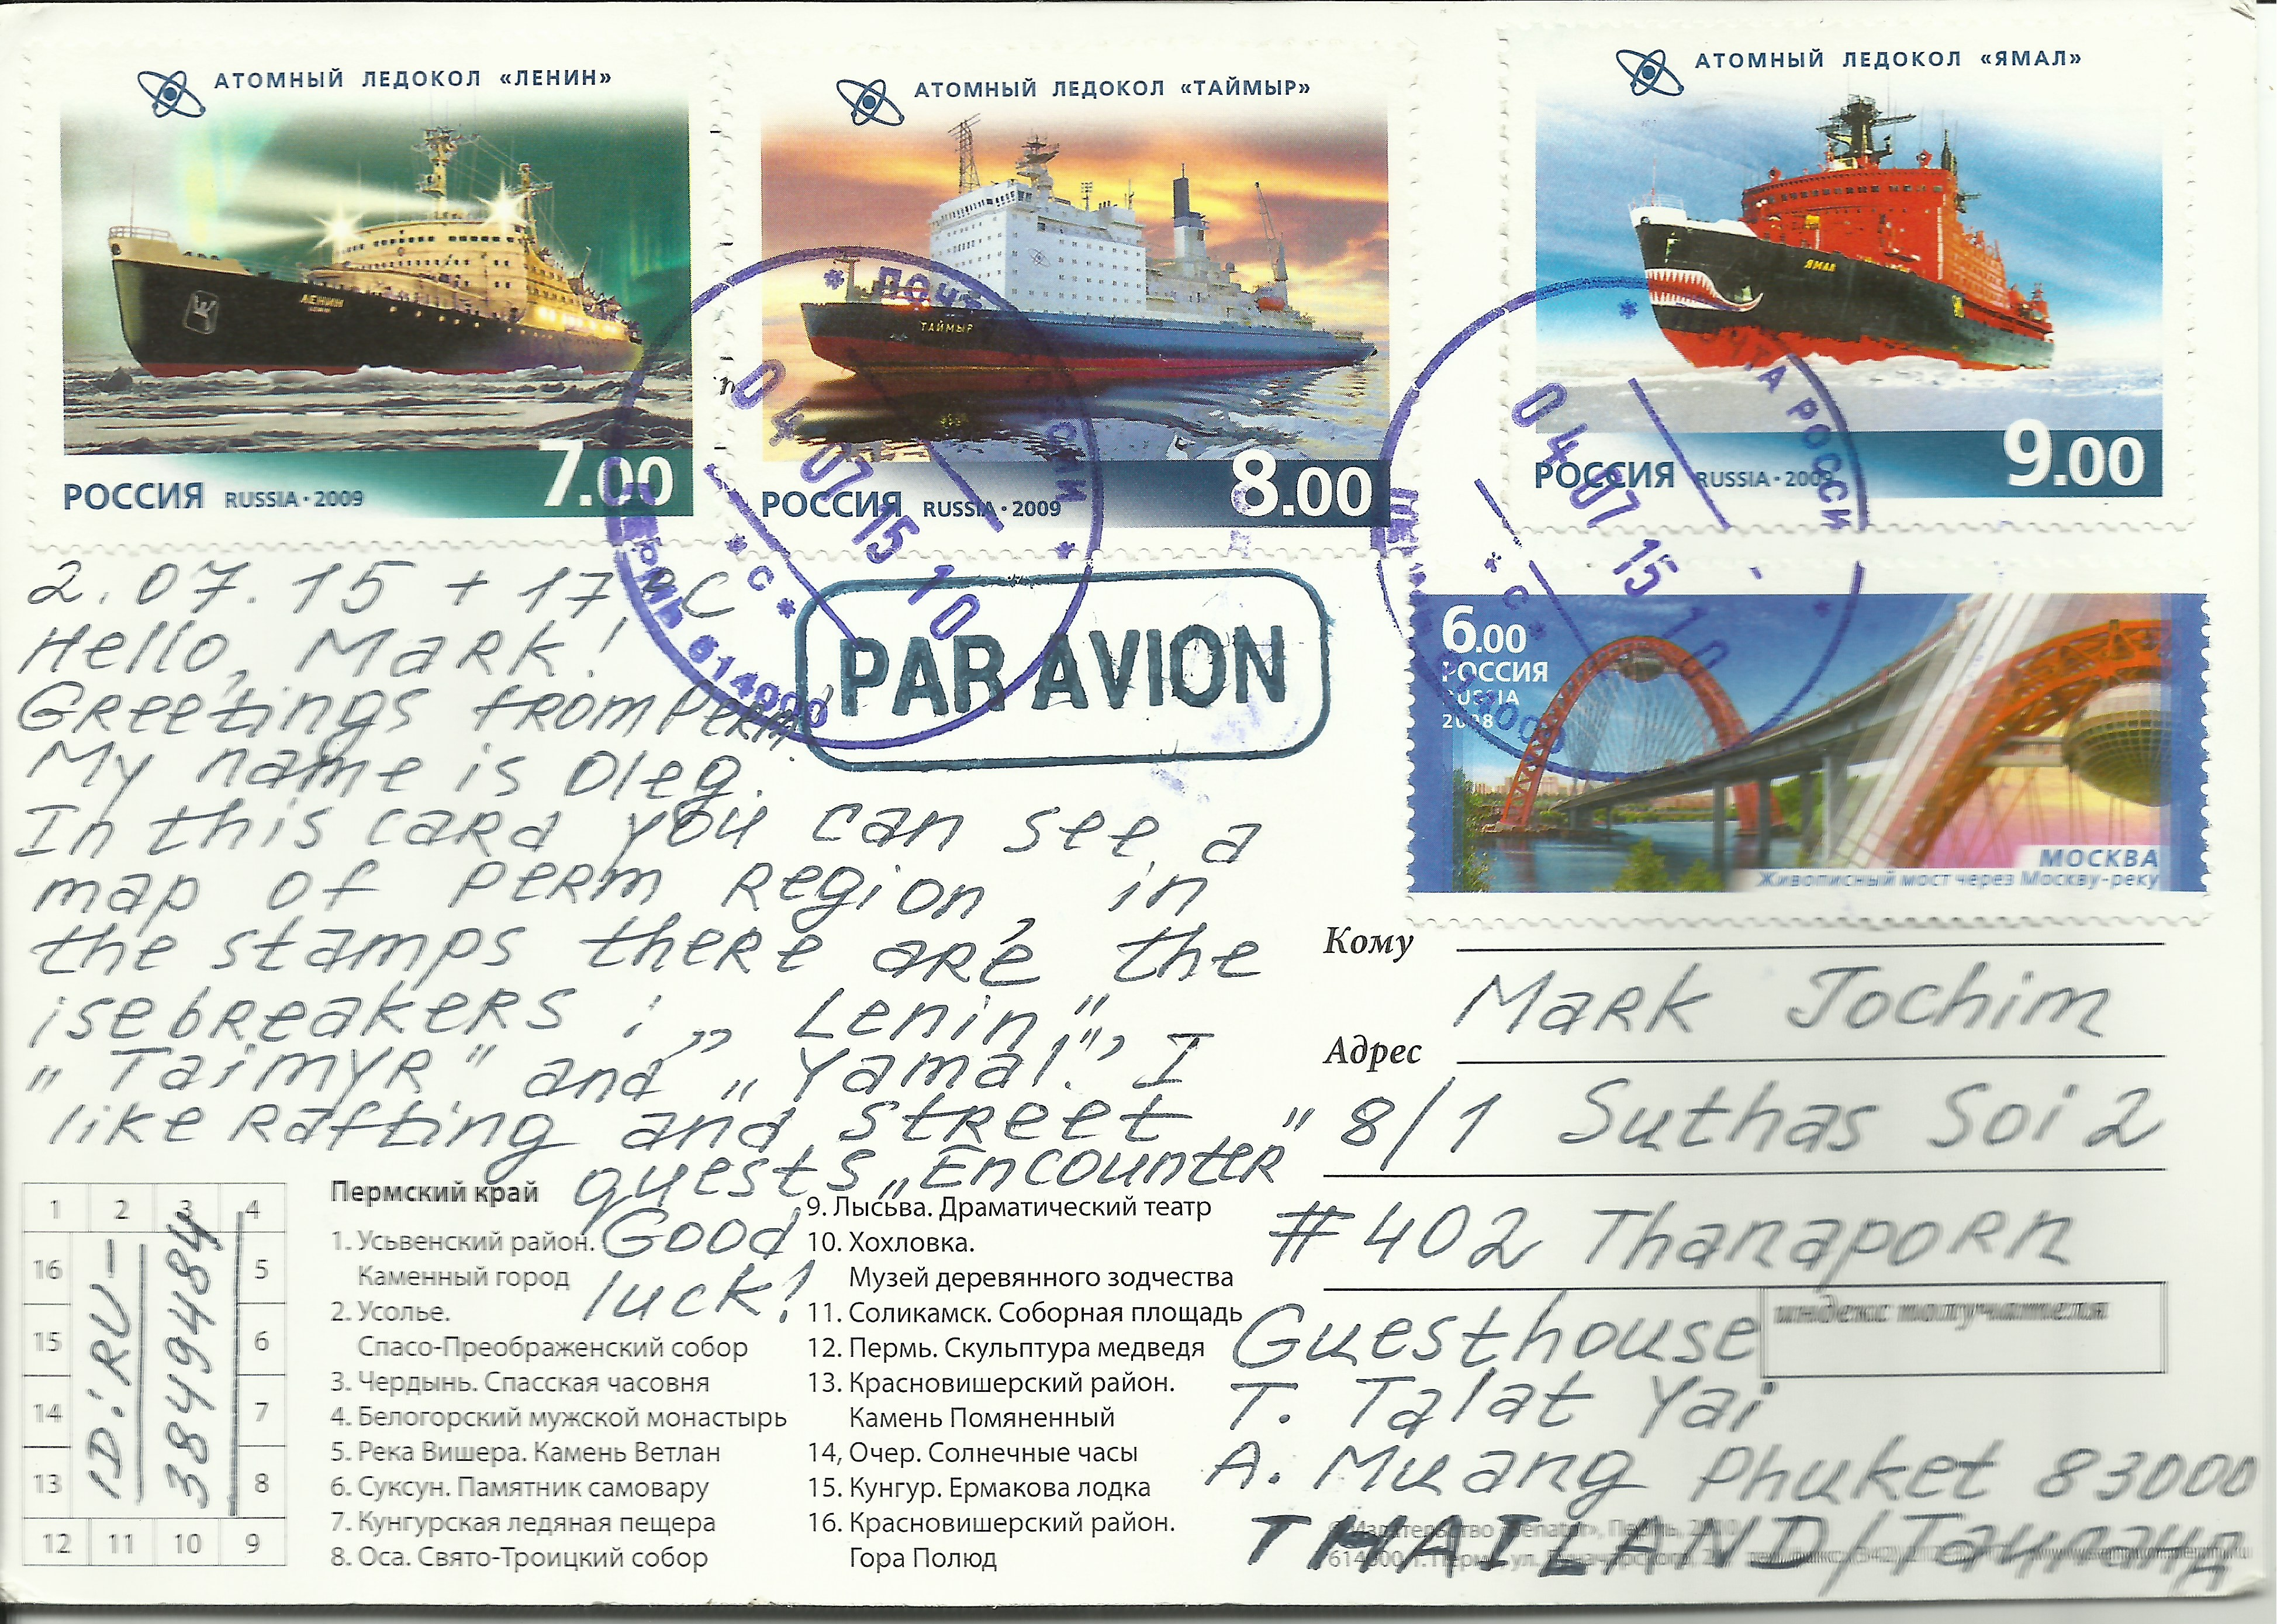 Postcard bearing copies of Scott #7146-7148, released in 2009 featuring atomic-powered icebreakers.